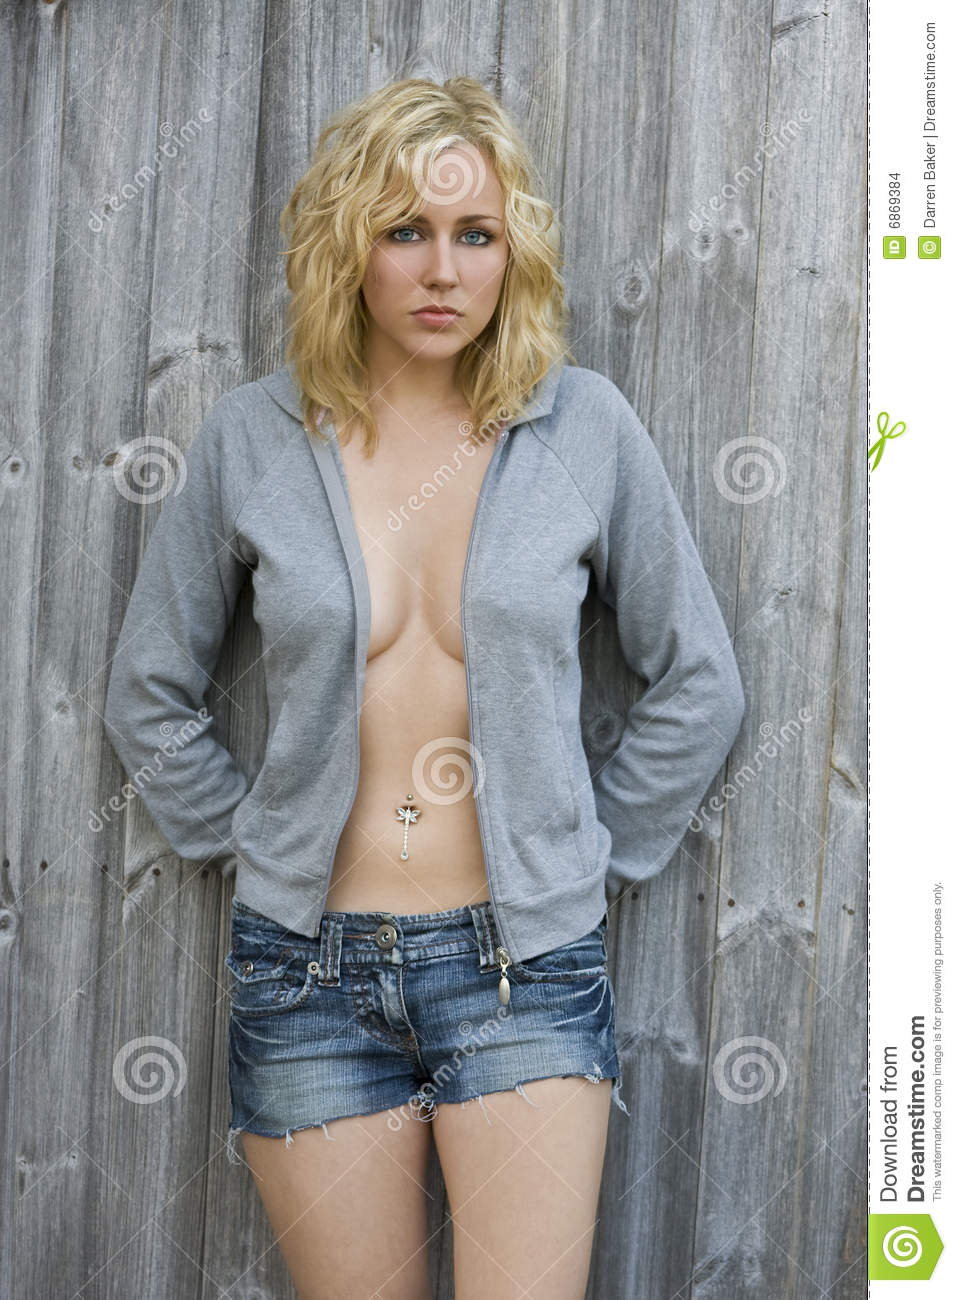 A beautiful blond haired blue eyed young woman looking in denim shorts and  a hooded top